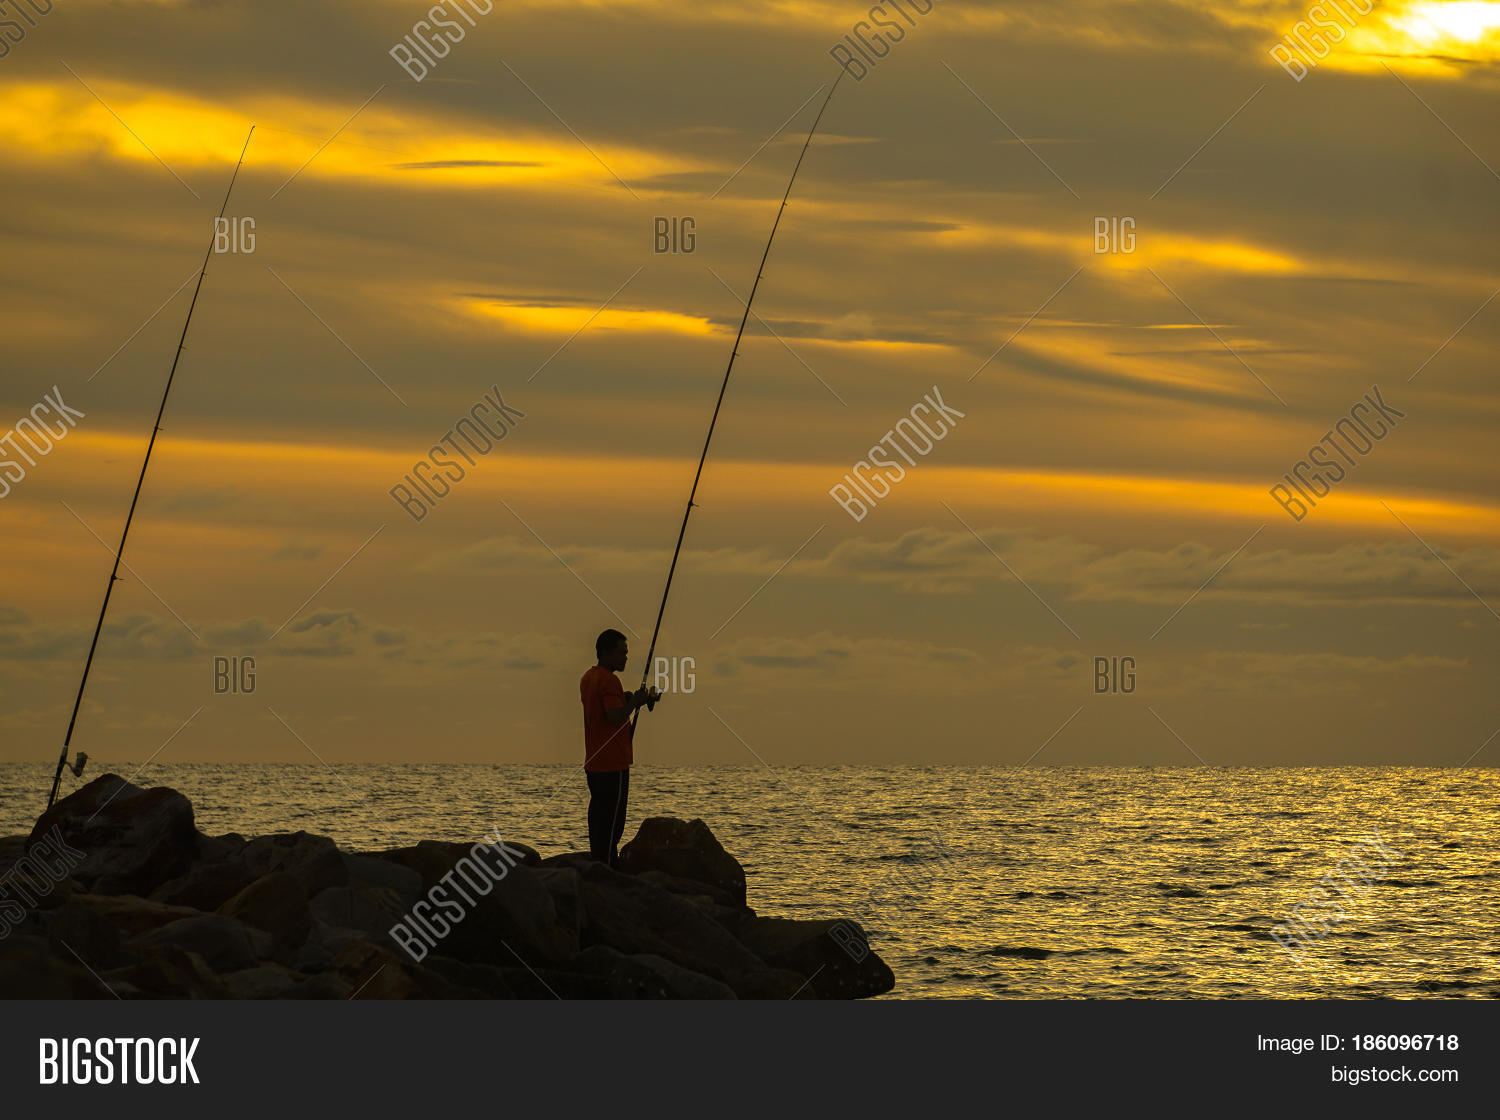 Silhouette people enjoying surf image photo bigstock for Surf fishing waders